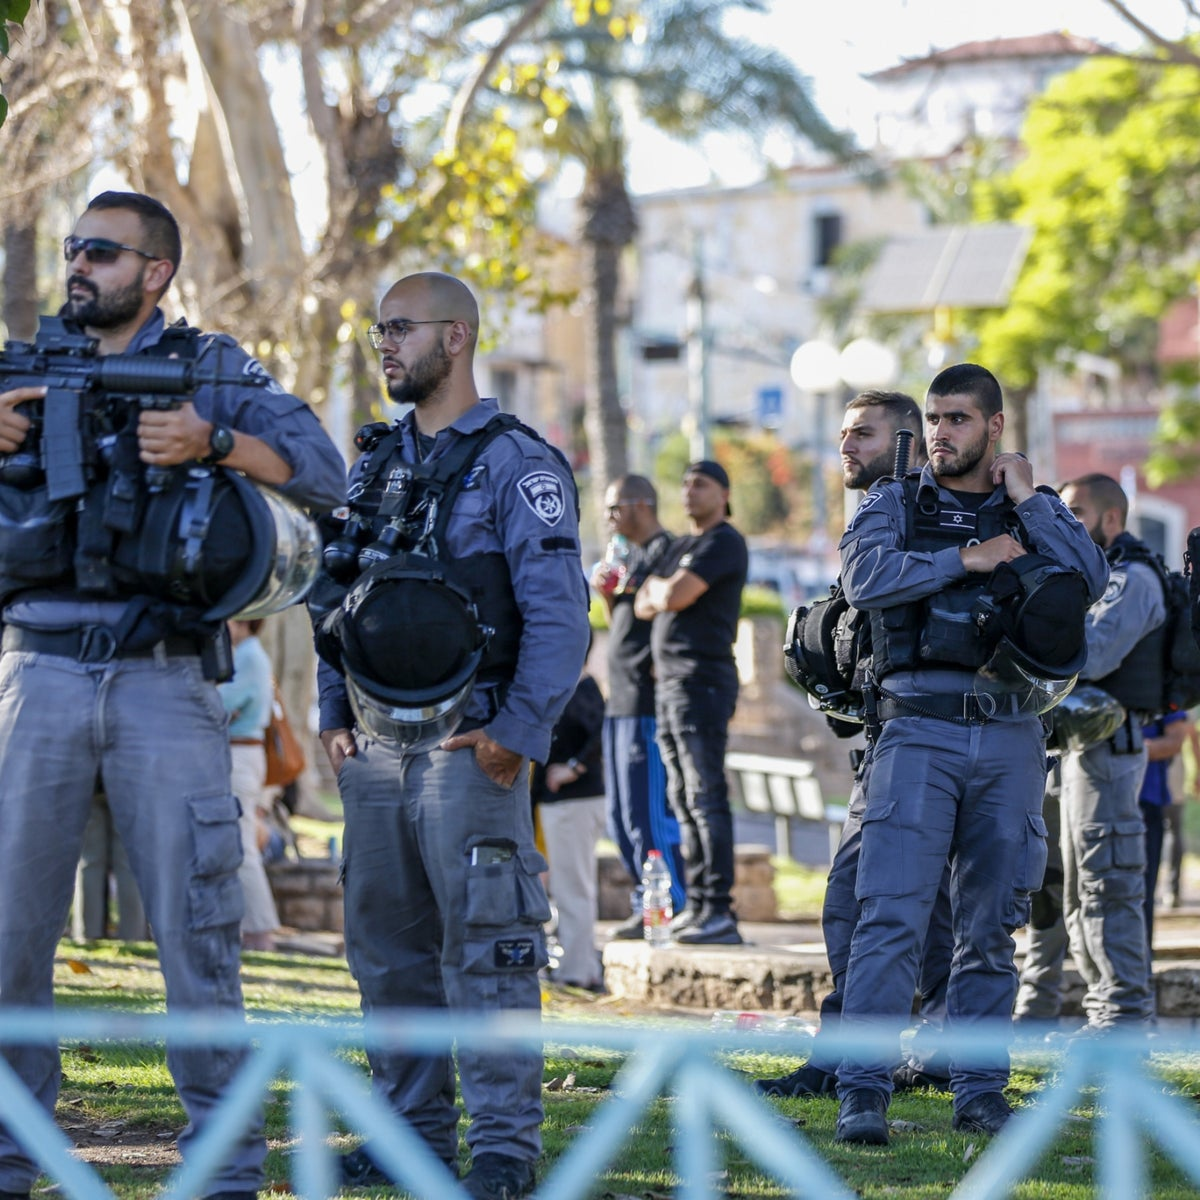 Police patrolling during a protest at Jaffa's Gan Hashnayim, Tuesday.